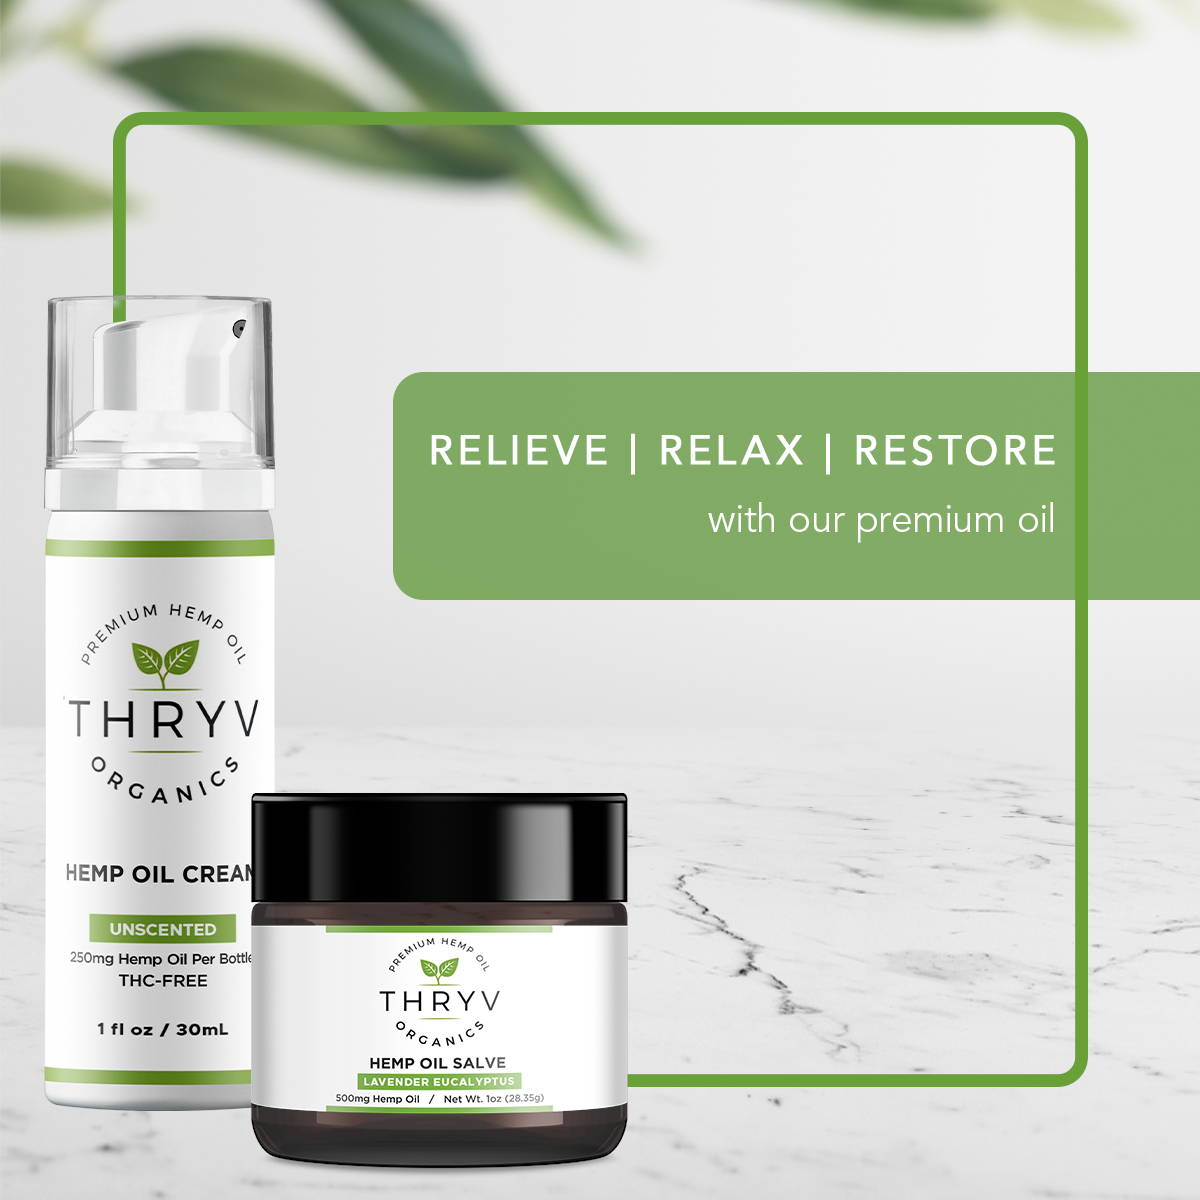 Relieve Relax Restore with Thryv Organics Premium Hemp Face Cream and Hemp Salve